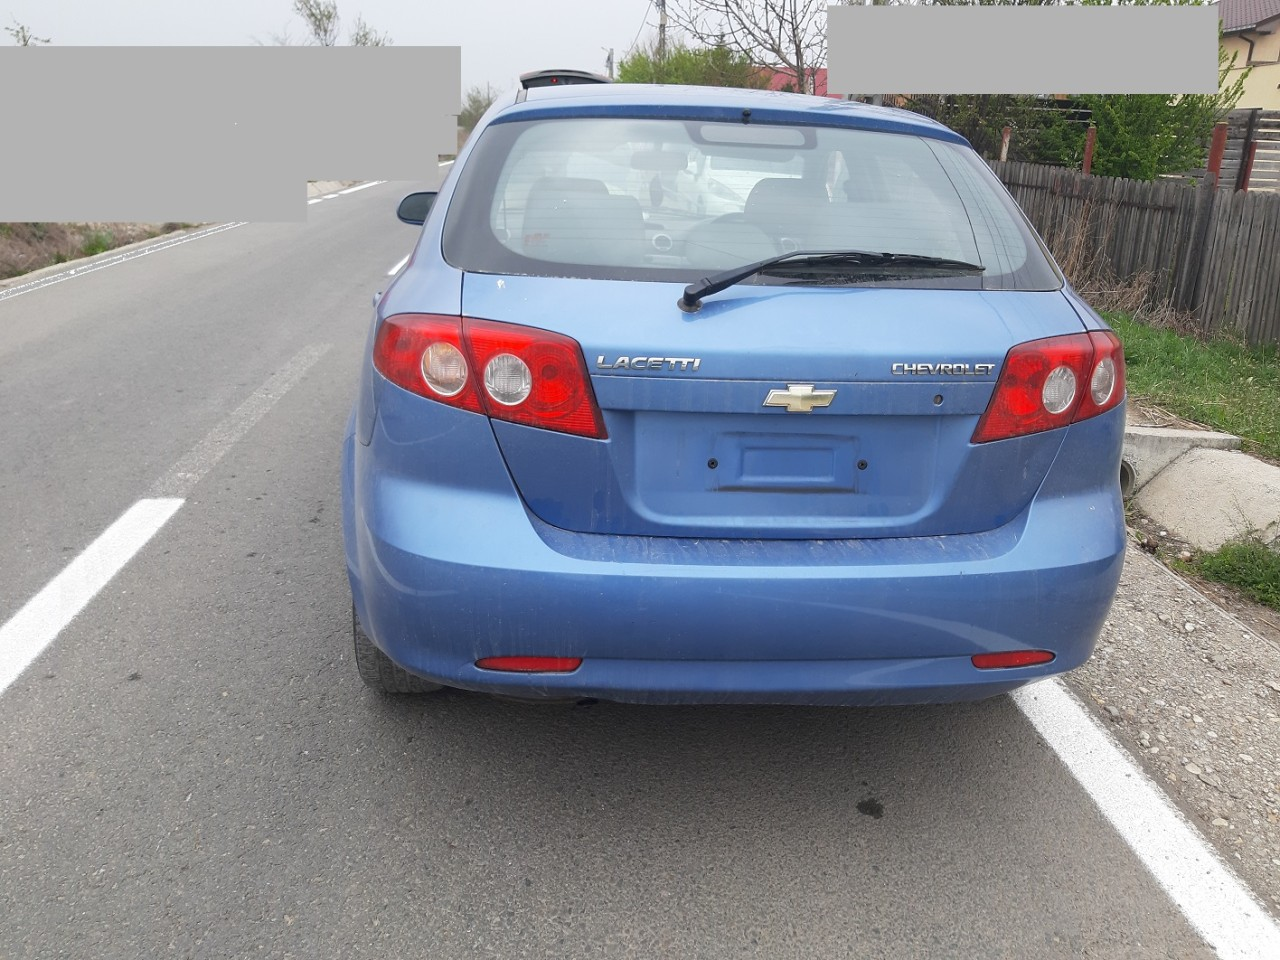 Vand piese chevrolet lacetti 1.6 i 80 kw an 2006  cutie automata